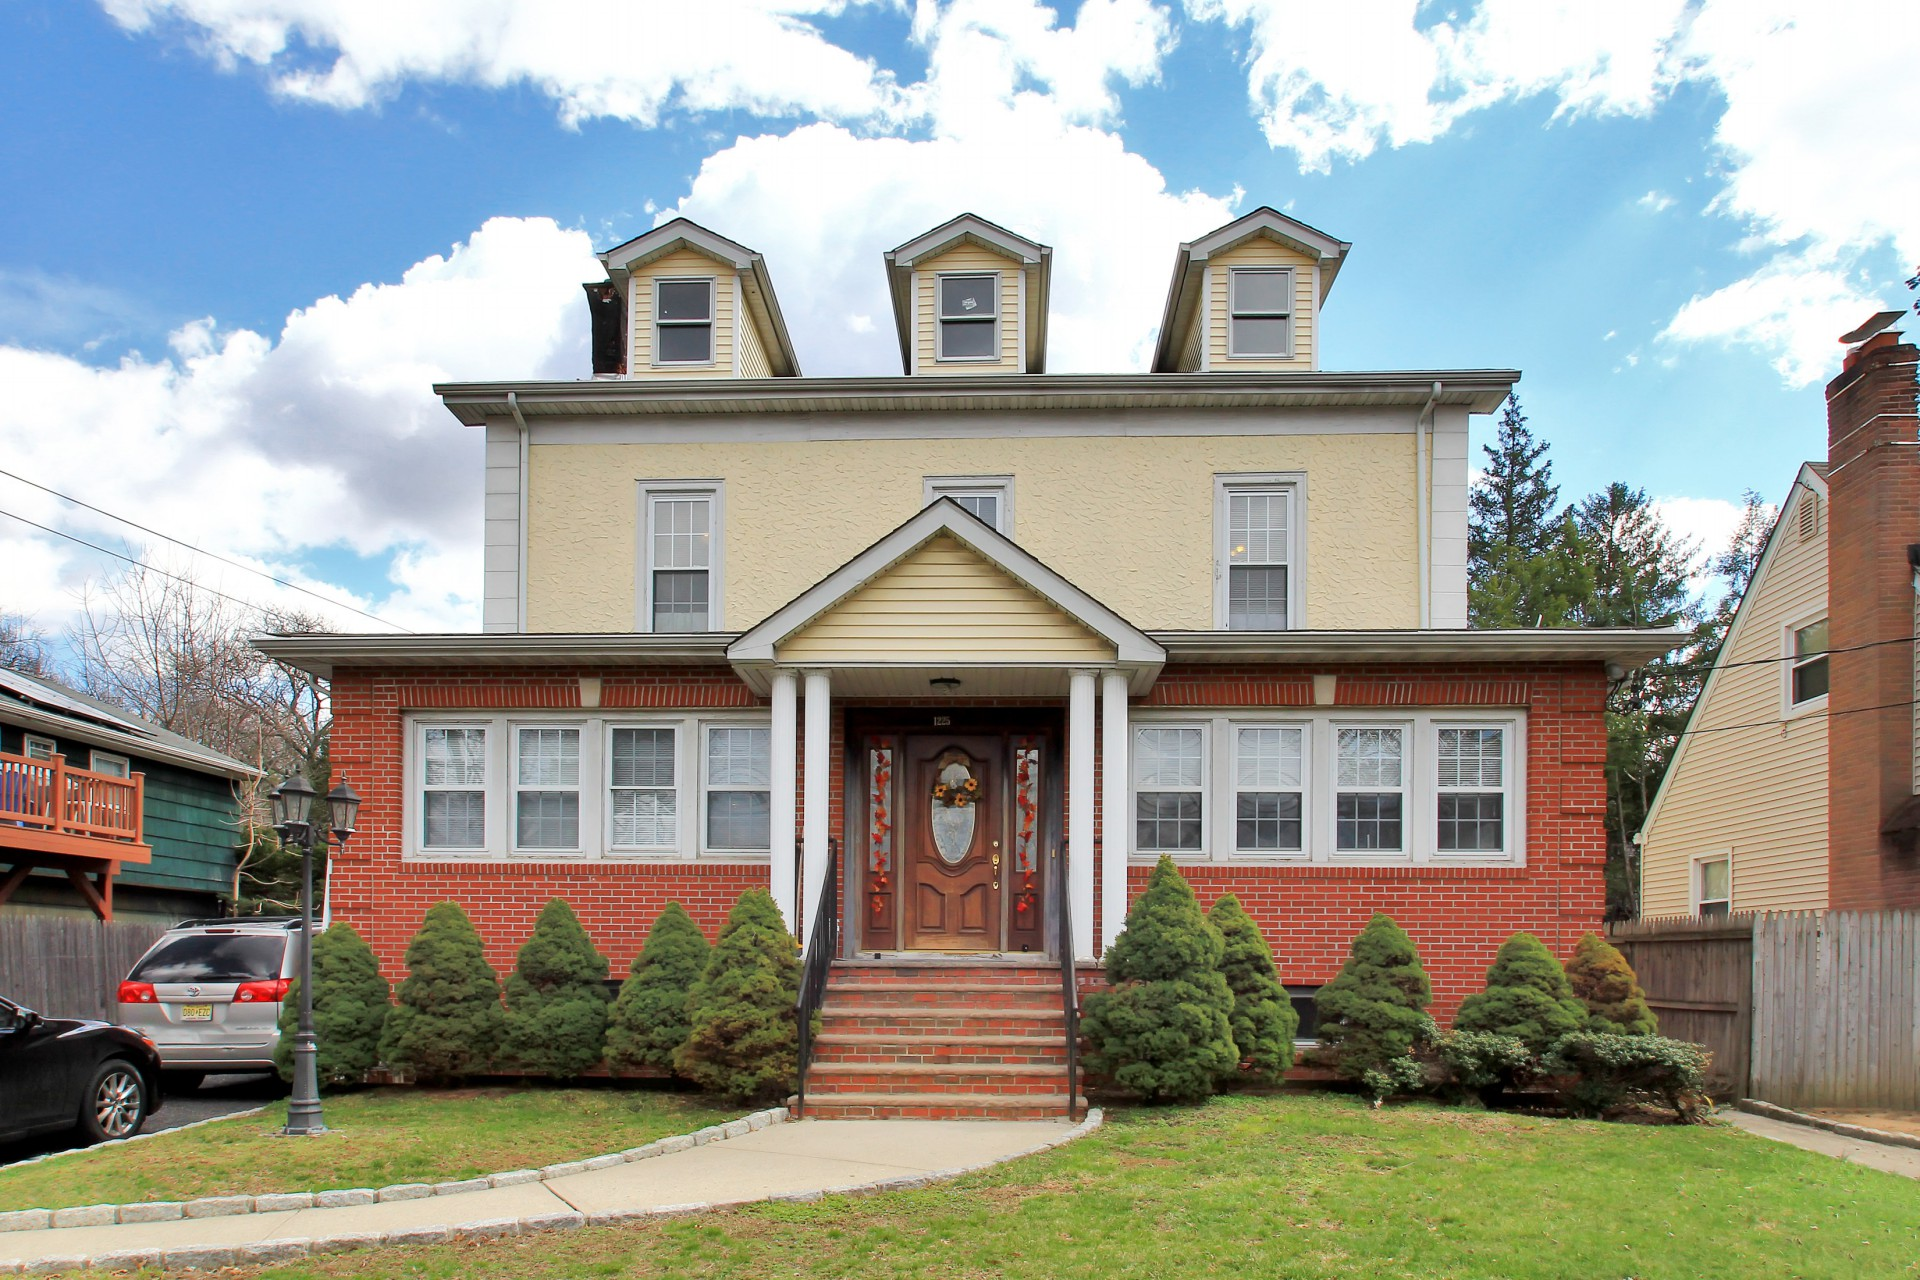 Single Family Home for Sale at Updated Colonial 1225 River Rd Teaneck, 07666 United States